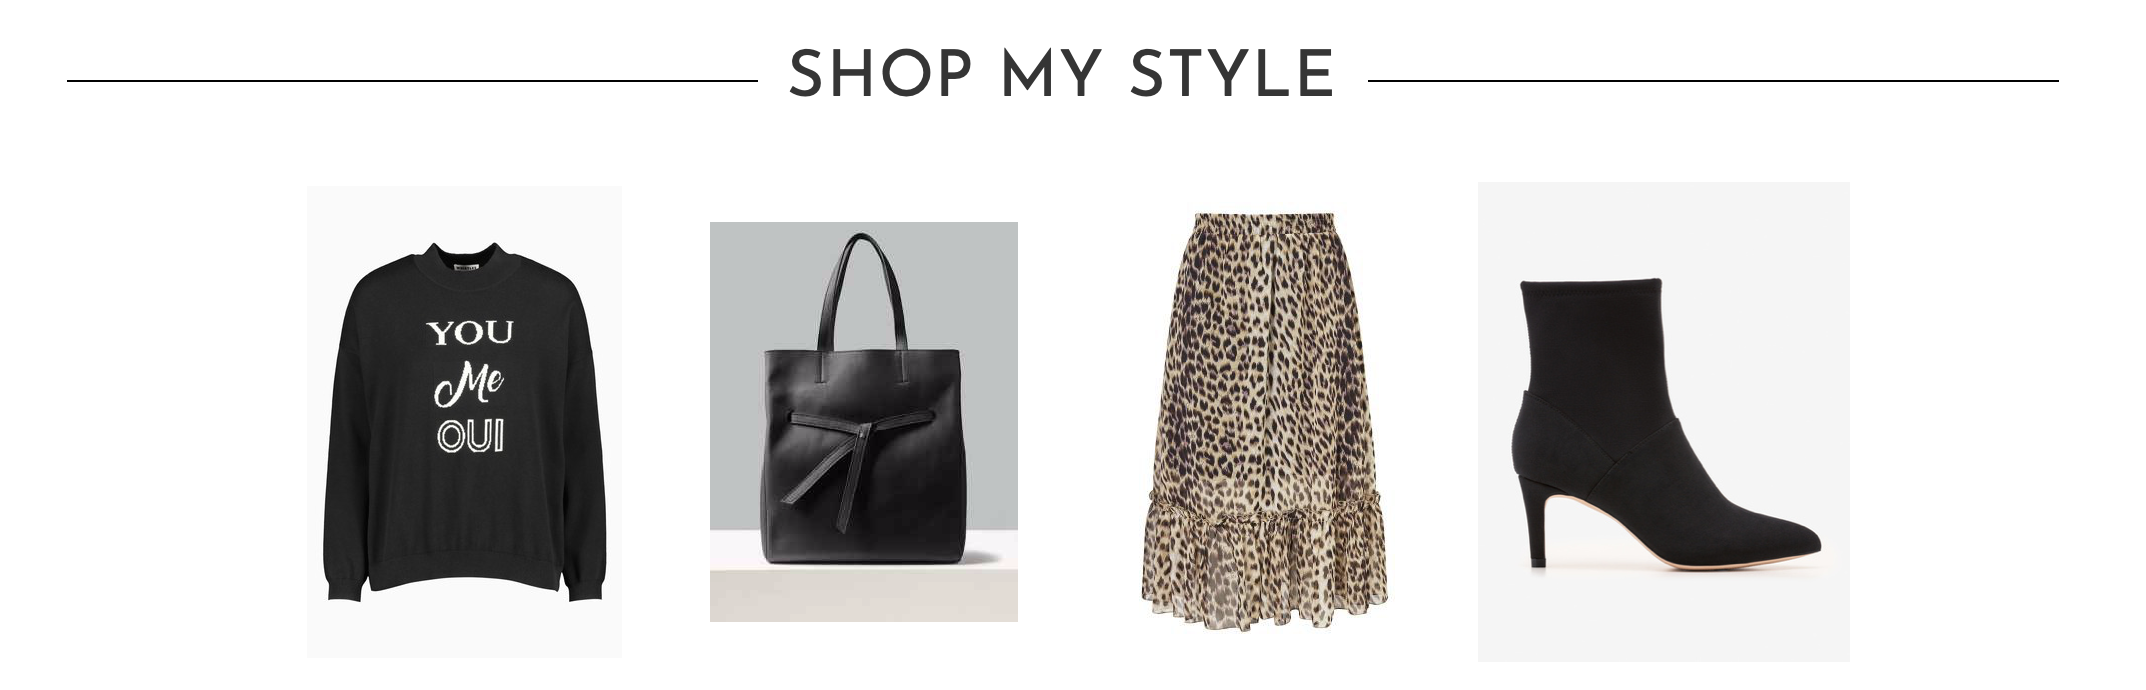 dbe32ebc33c9 How to style & where to shop a statement leopard print frill detail skirt  with a slogan knit & black accessories #ootd #wiw #lotd #over40  #over40fashion ...